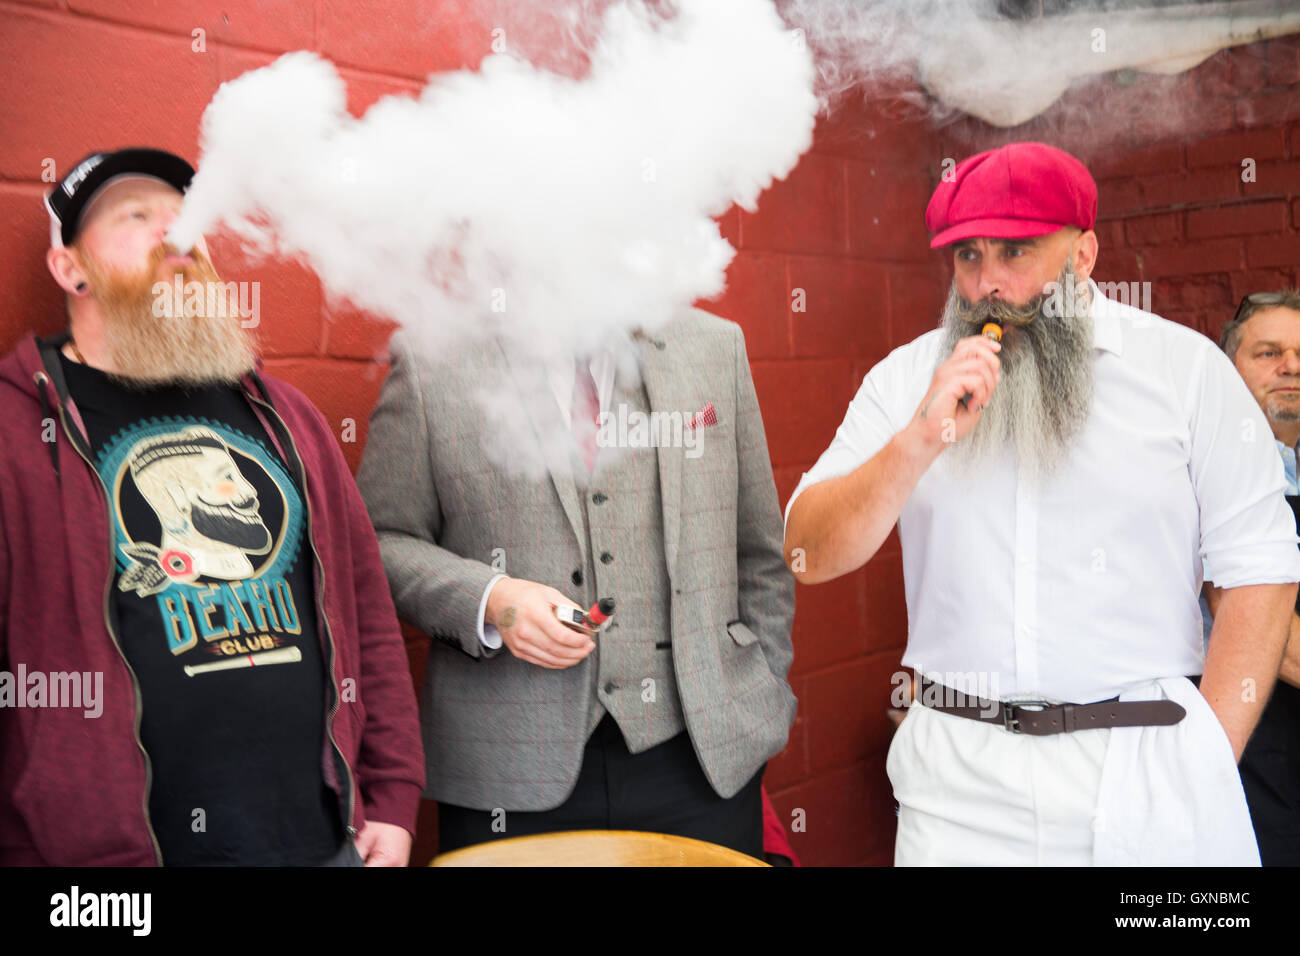 Oxford, UK.17th September 2016. Contestants during the  Annual Beard Festival held in Oxford.l  Credit:  Pete Lusabia/Alamy - Stock Image